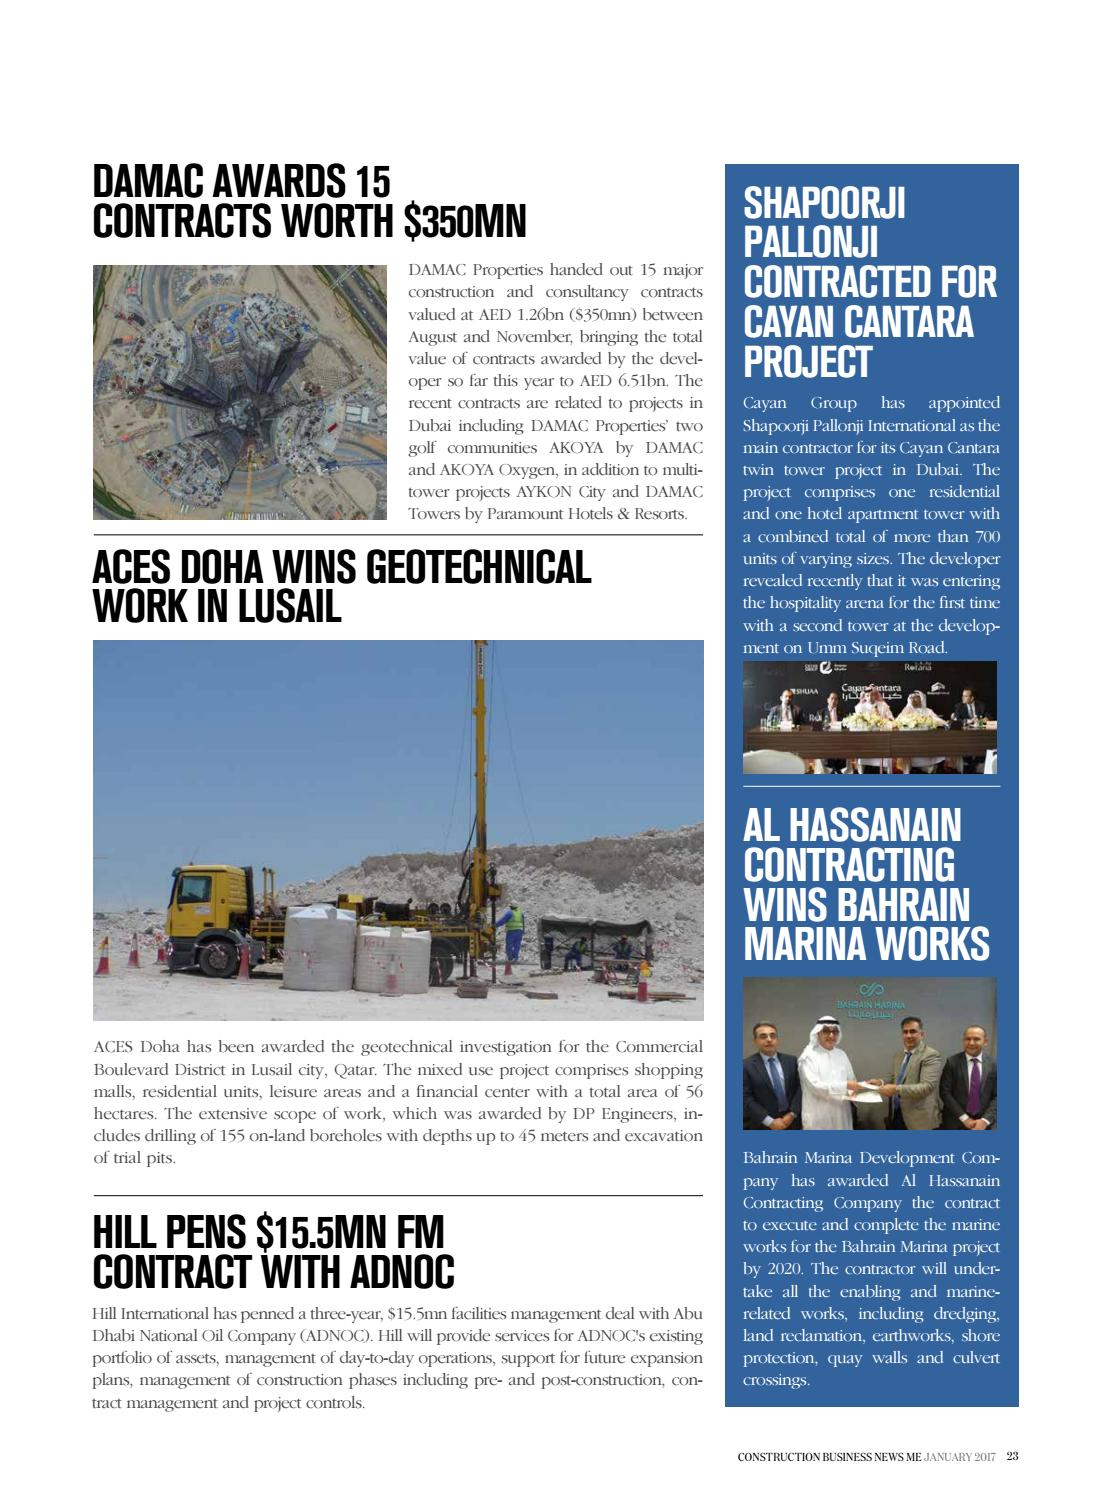 Construction Business News ME - January 2017 by BNC